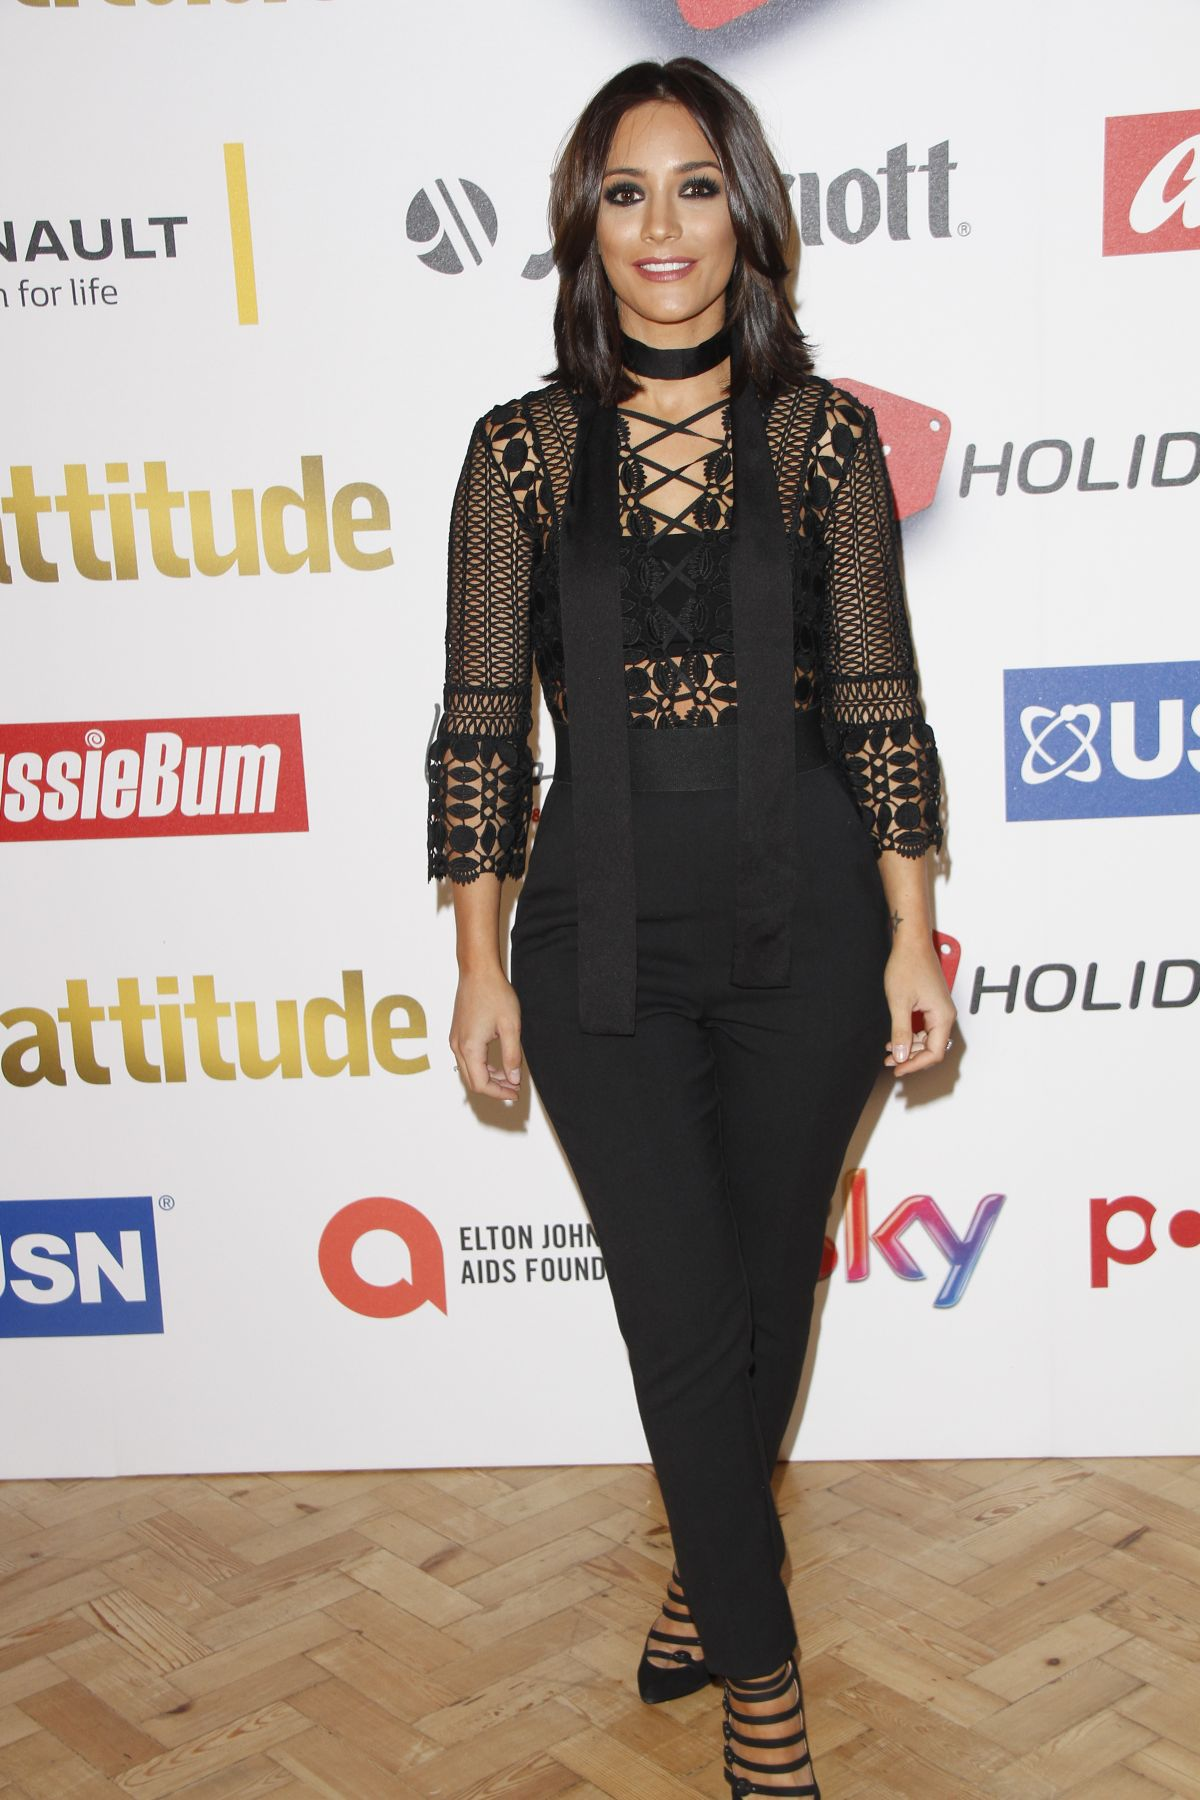 FRANKIE SANDFORD at Attitude Magazine Awards in London 10/14/2015